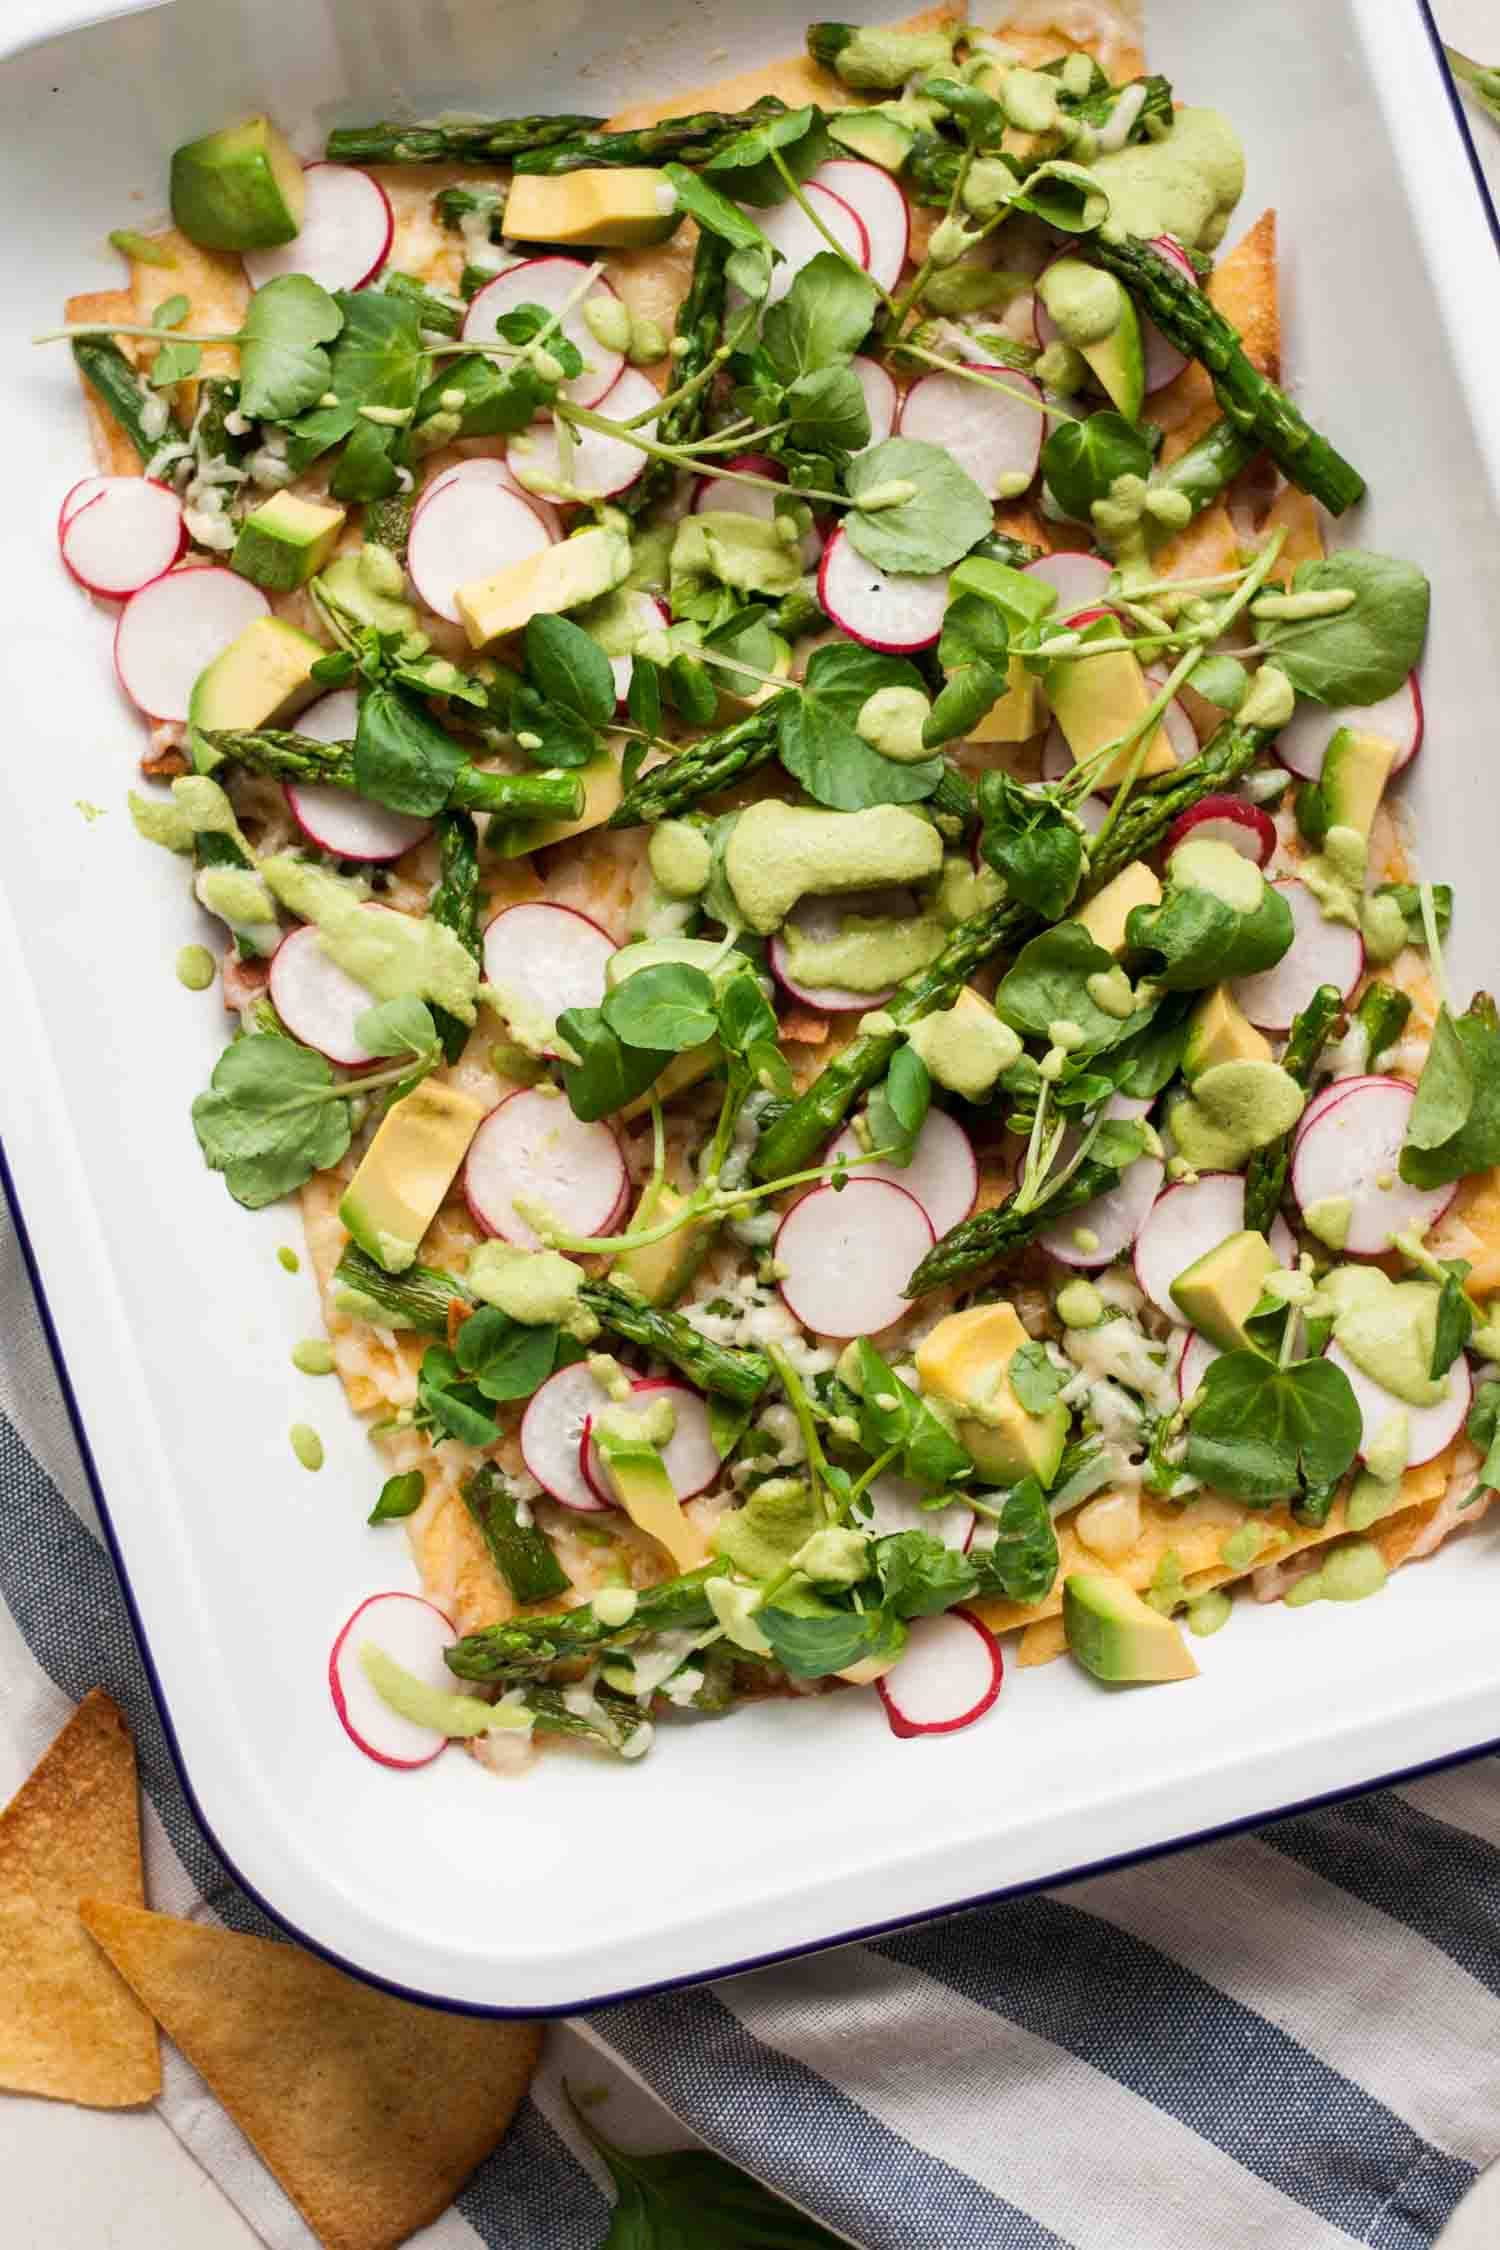 Healthy Asparagus Nachos - this light and fresh asparagus nacho recipe tastes just as indulgent as regular nachos, but without weighing heavy on the stomach. Win! | eatloveeats.com